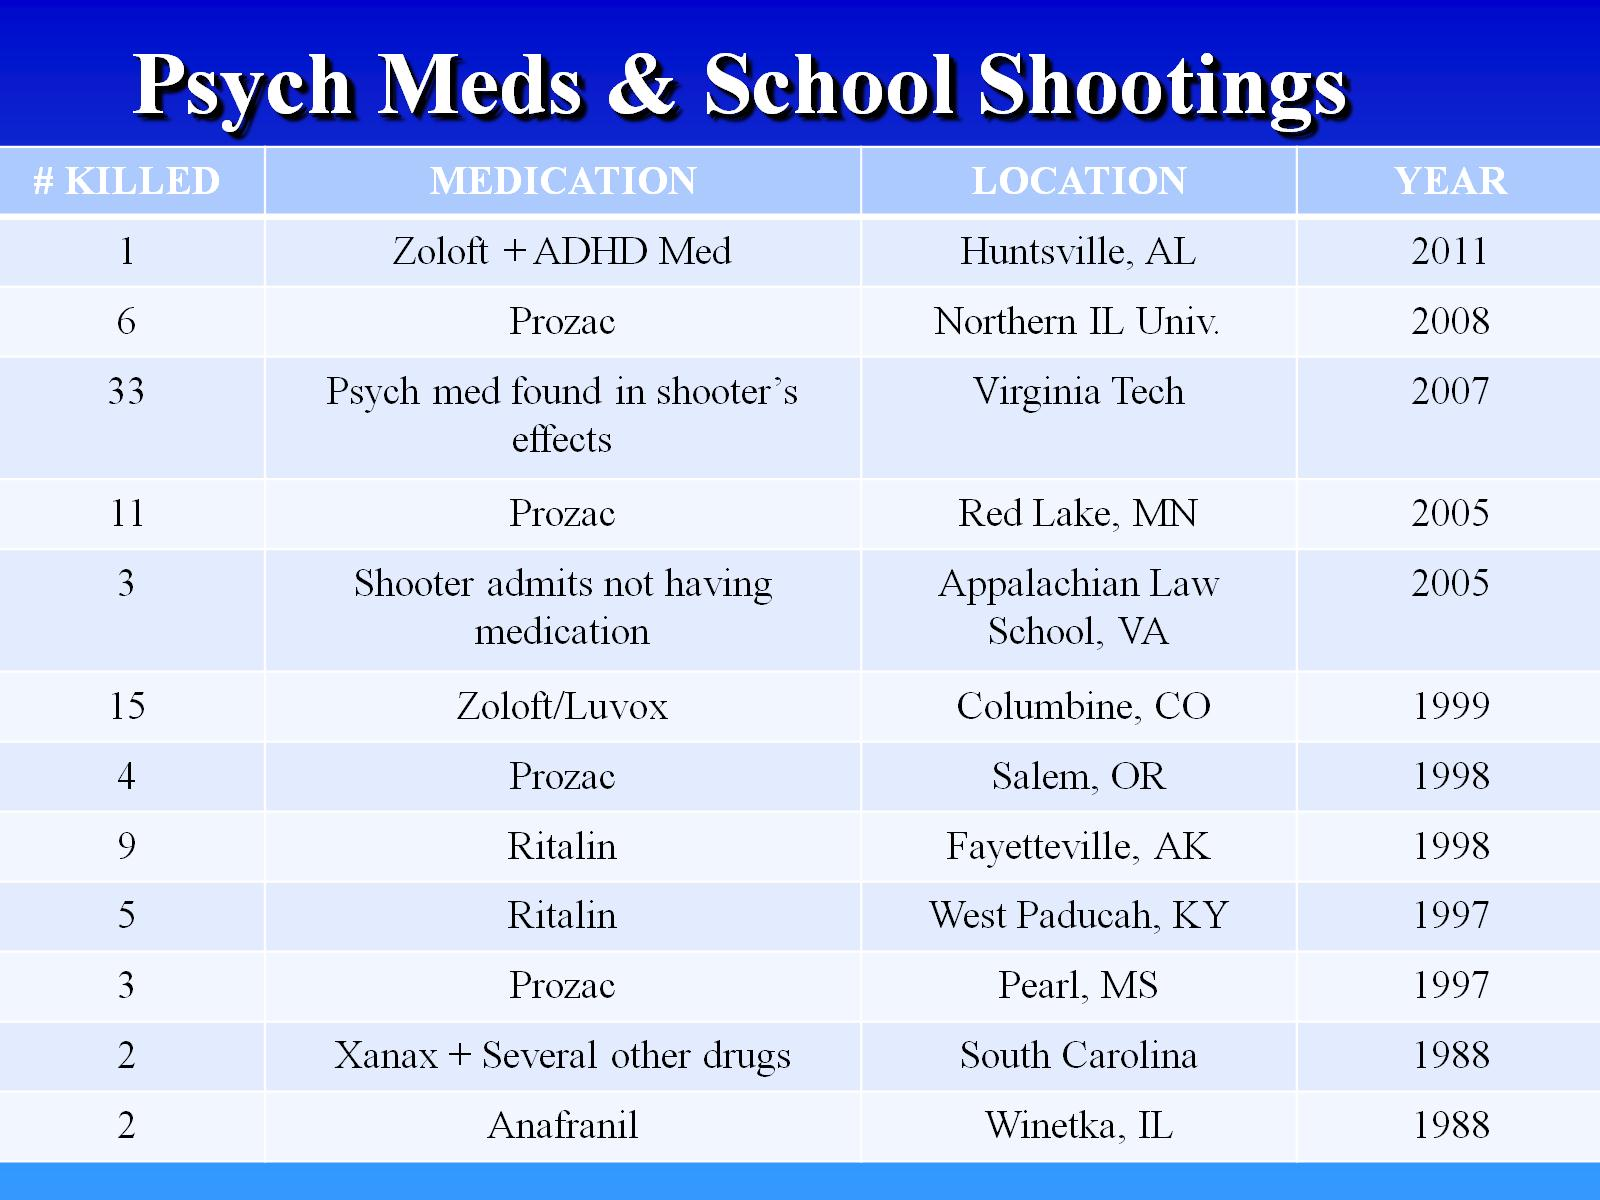 Reasons for school shootings: why are they so frequent?